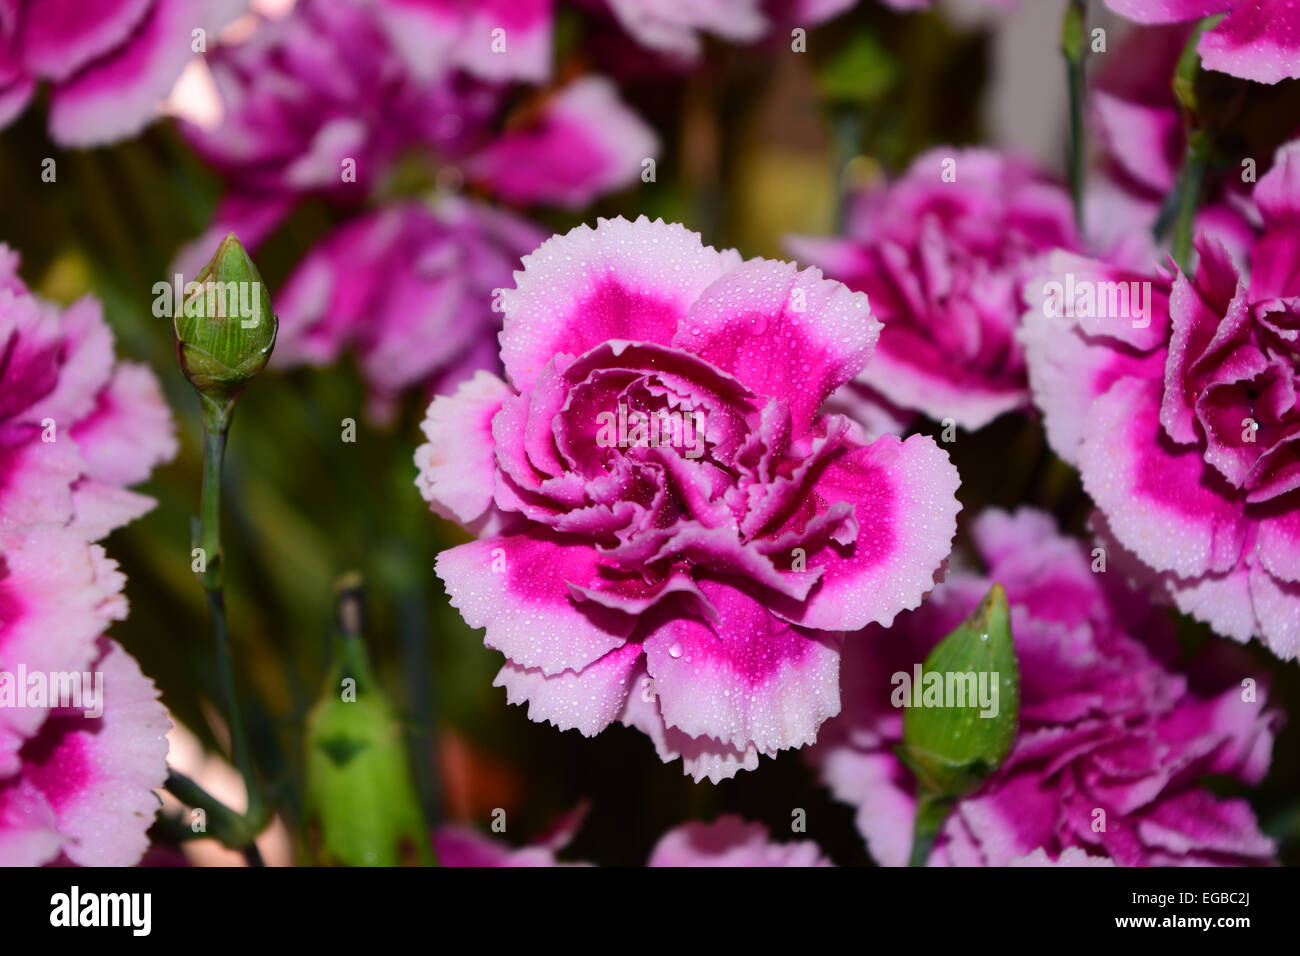 Violet Flower Flowers India Stock Photos Violet Flower Flowers